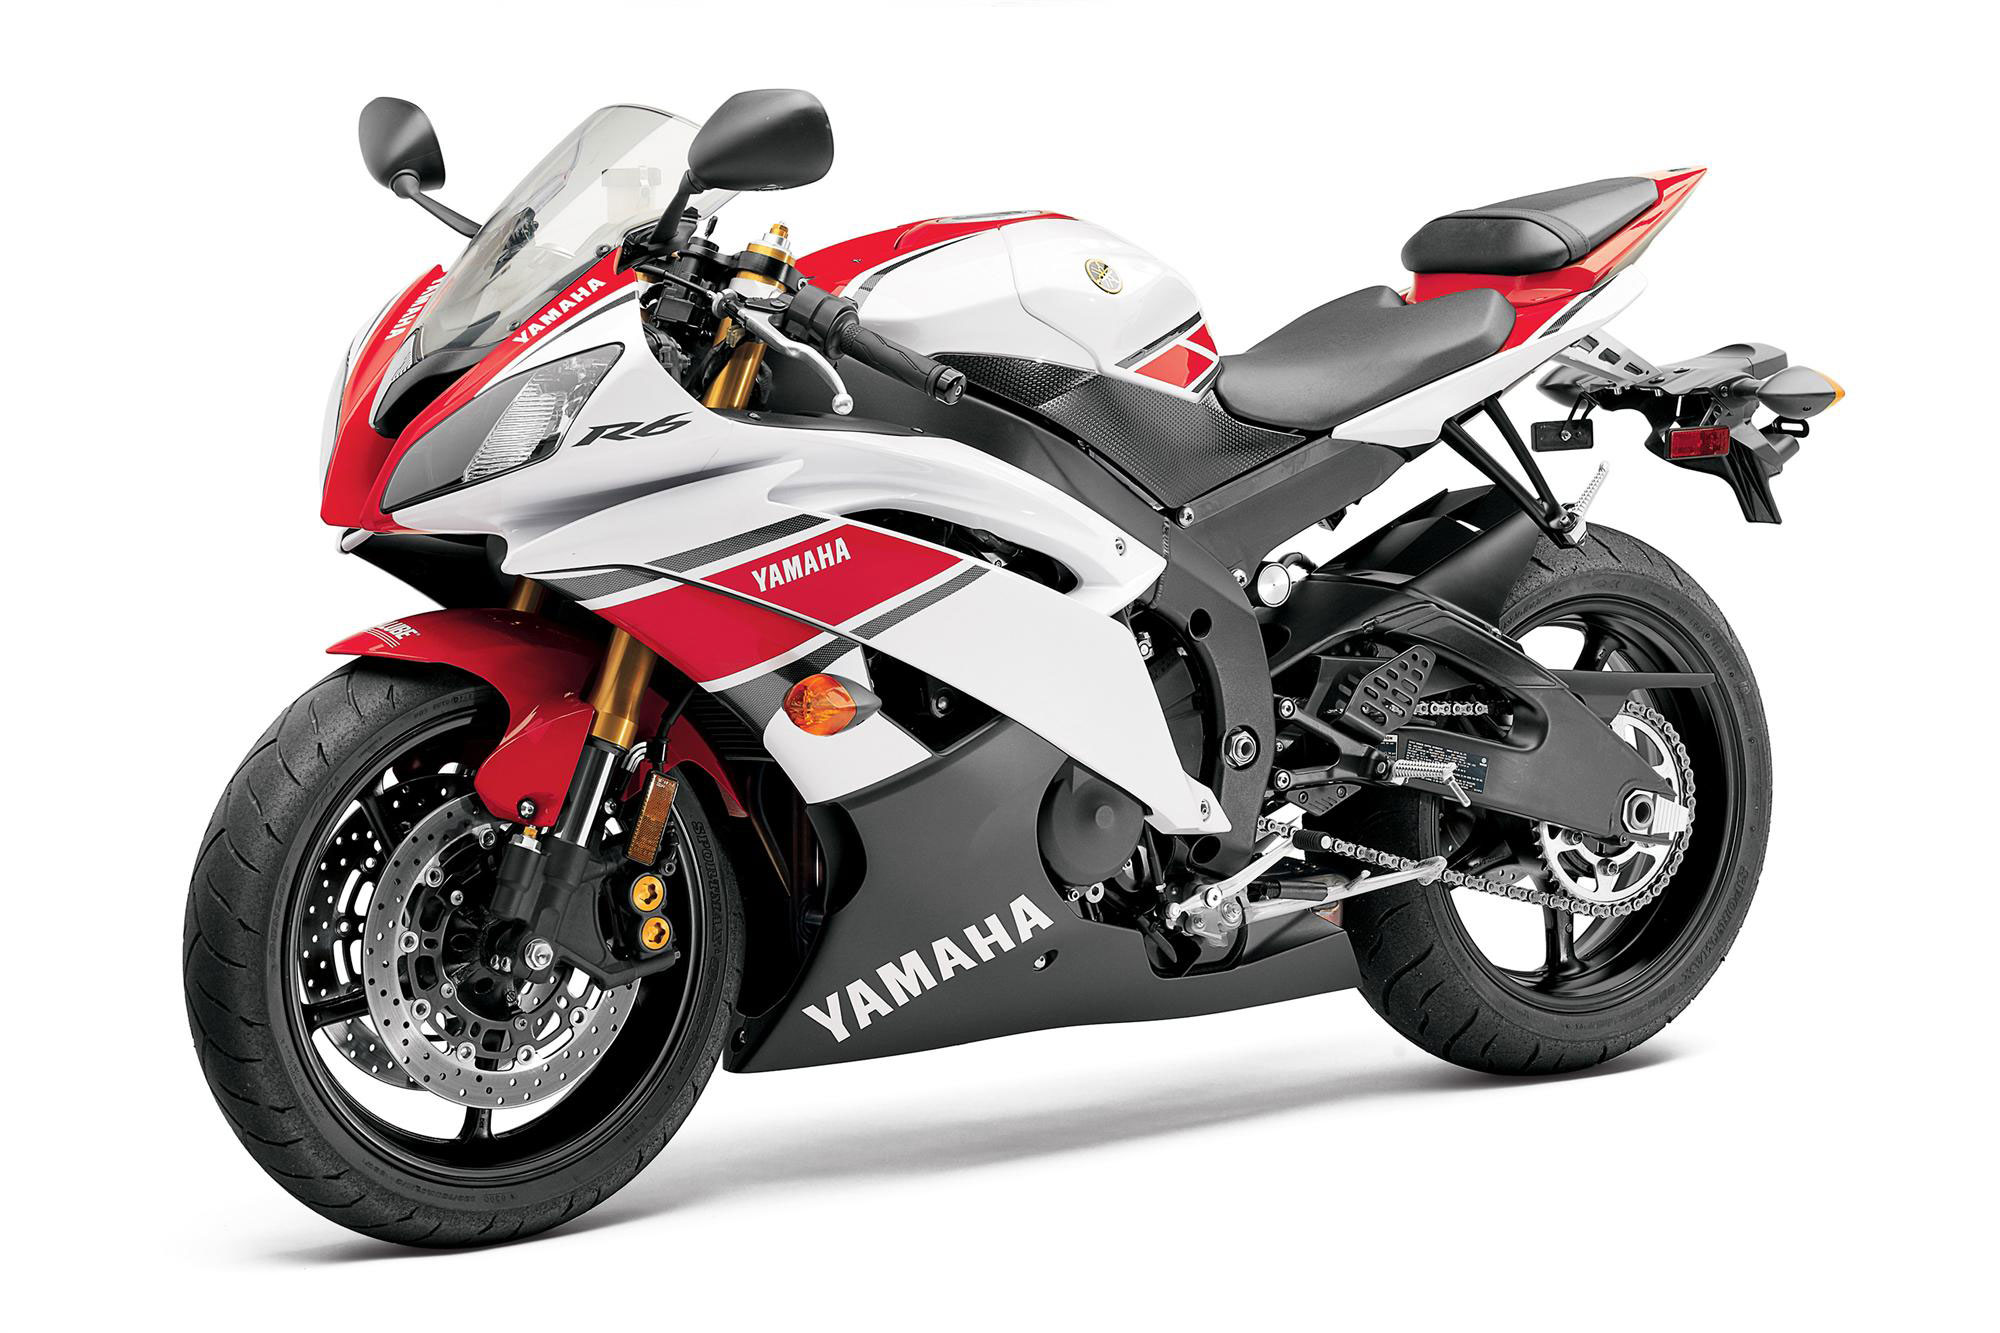 2012 yamaha r6 50th anniversary edition